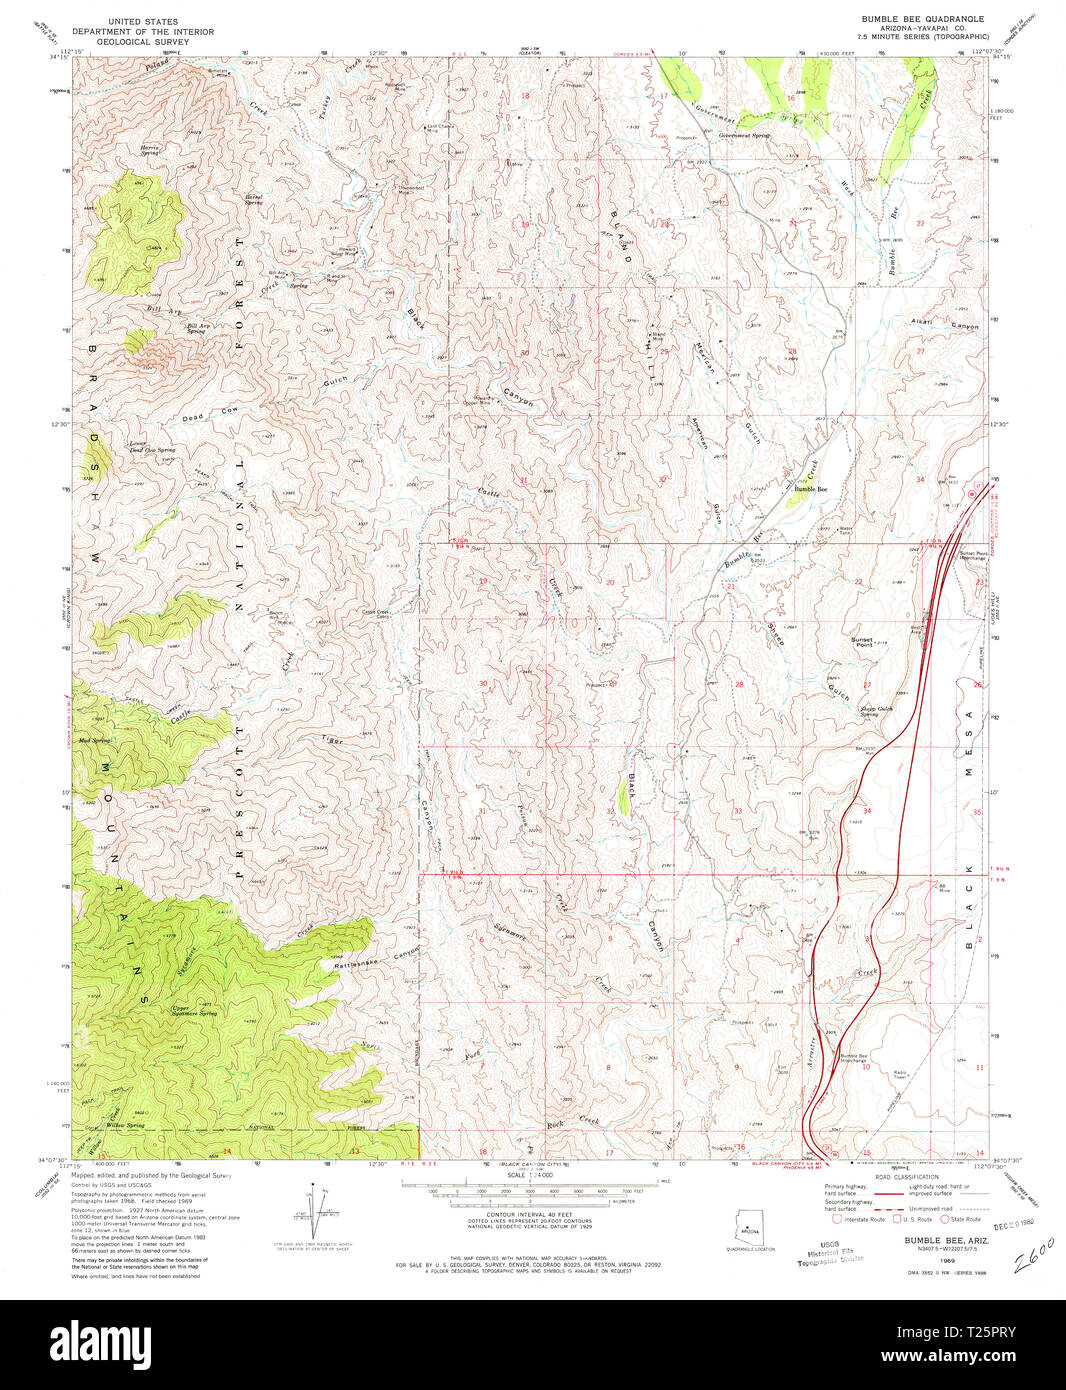 USGS TOPO Map Arizona AZ Bumble Bee 310649 1969 24000 ... Usgs Bee Map on dcnr maps, topographic maps, digitalglobe maps, dnr maps, google maps, science maps, esri maps, delorme maps, geological survey maps, microsoft maps, geology maps, twra maps, ascs maps, noaa maps, bucks county pa township maps, cornell university maps, cia maps, osm maps, unosat maps, usc maps,